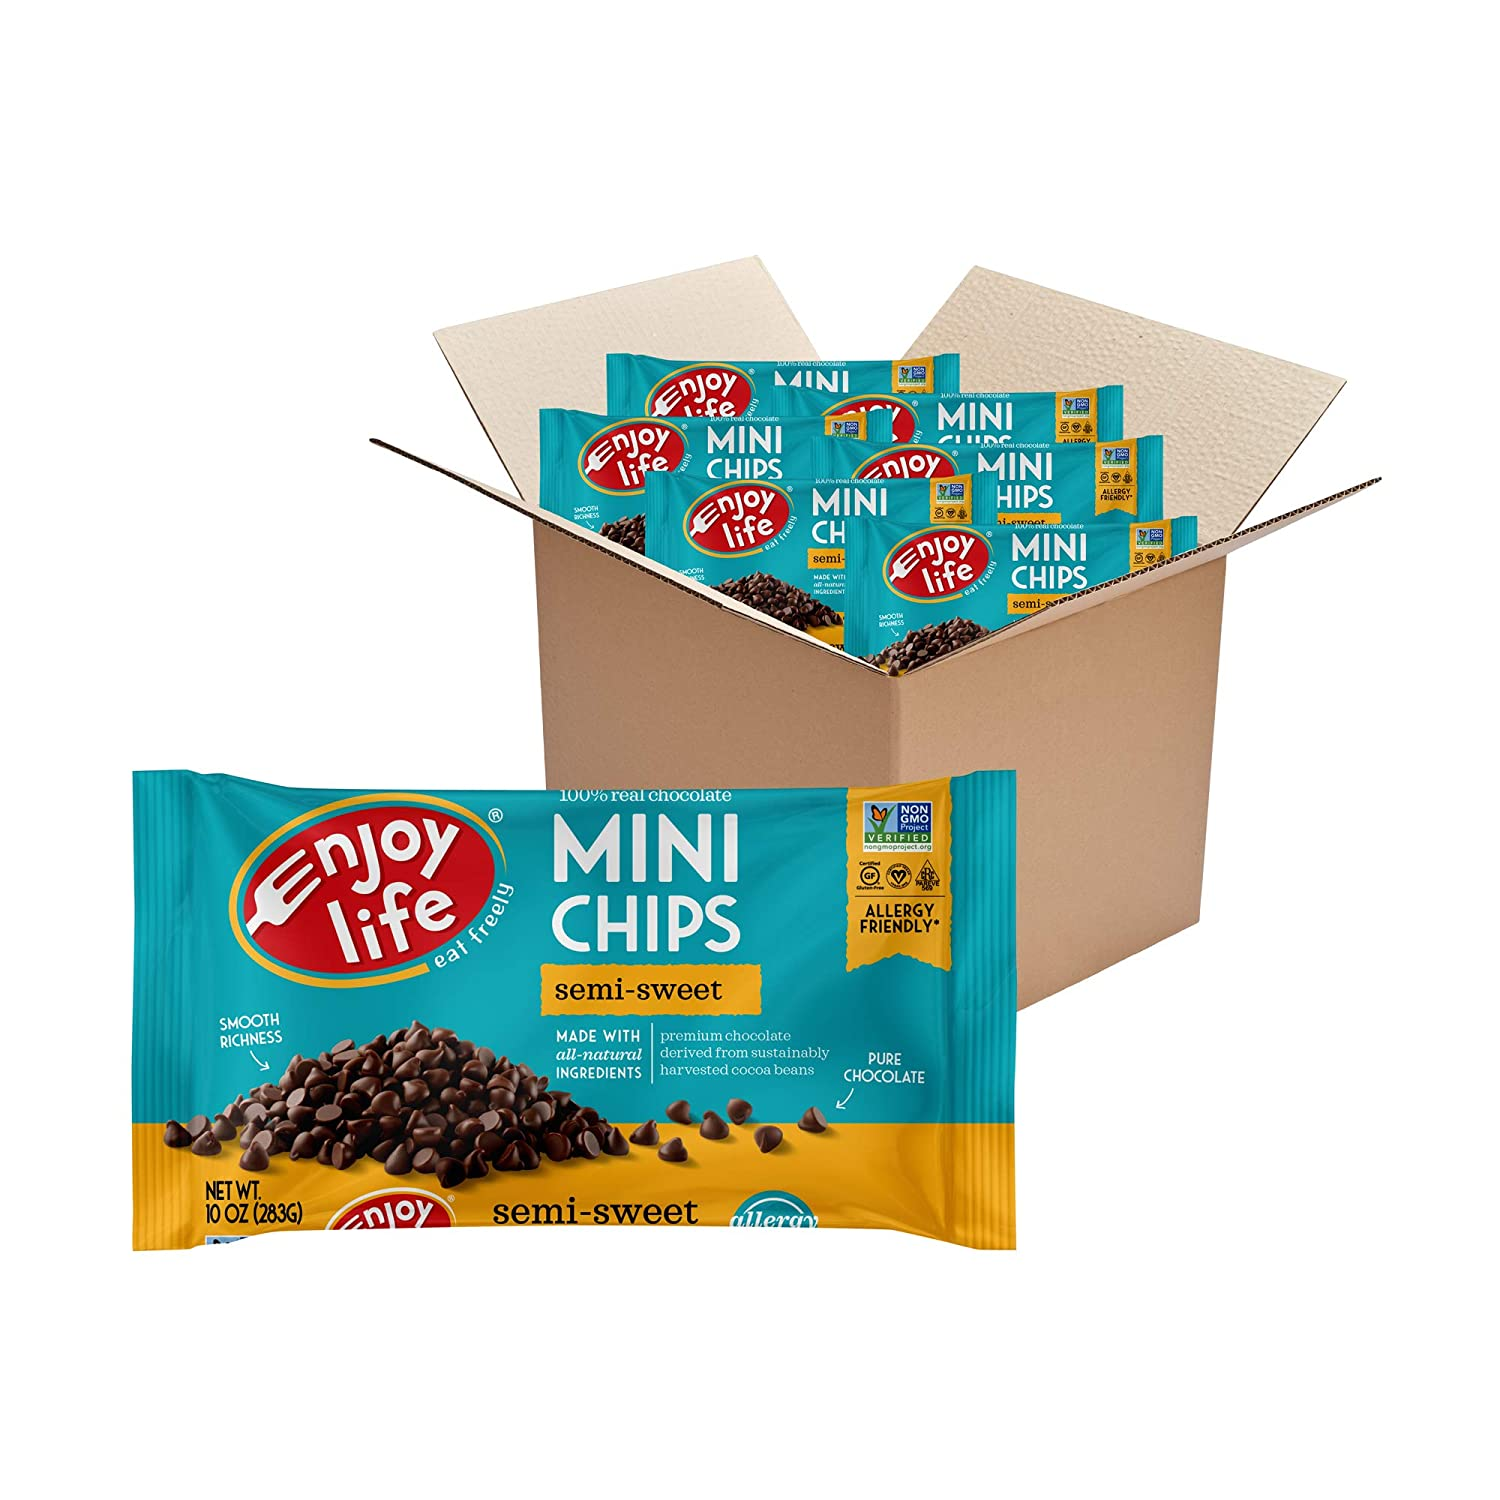 Enjoy Life Baking Chocolate Semi-Sweet Mini Chips, Dairy Free Chocolate Chips, Soy Free, Nut Free, Non GMO, Gluten Free, Vegan Chocolate Chips, 6 Bags